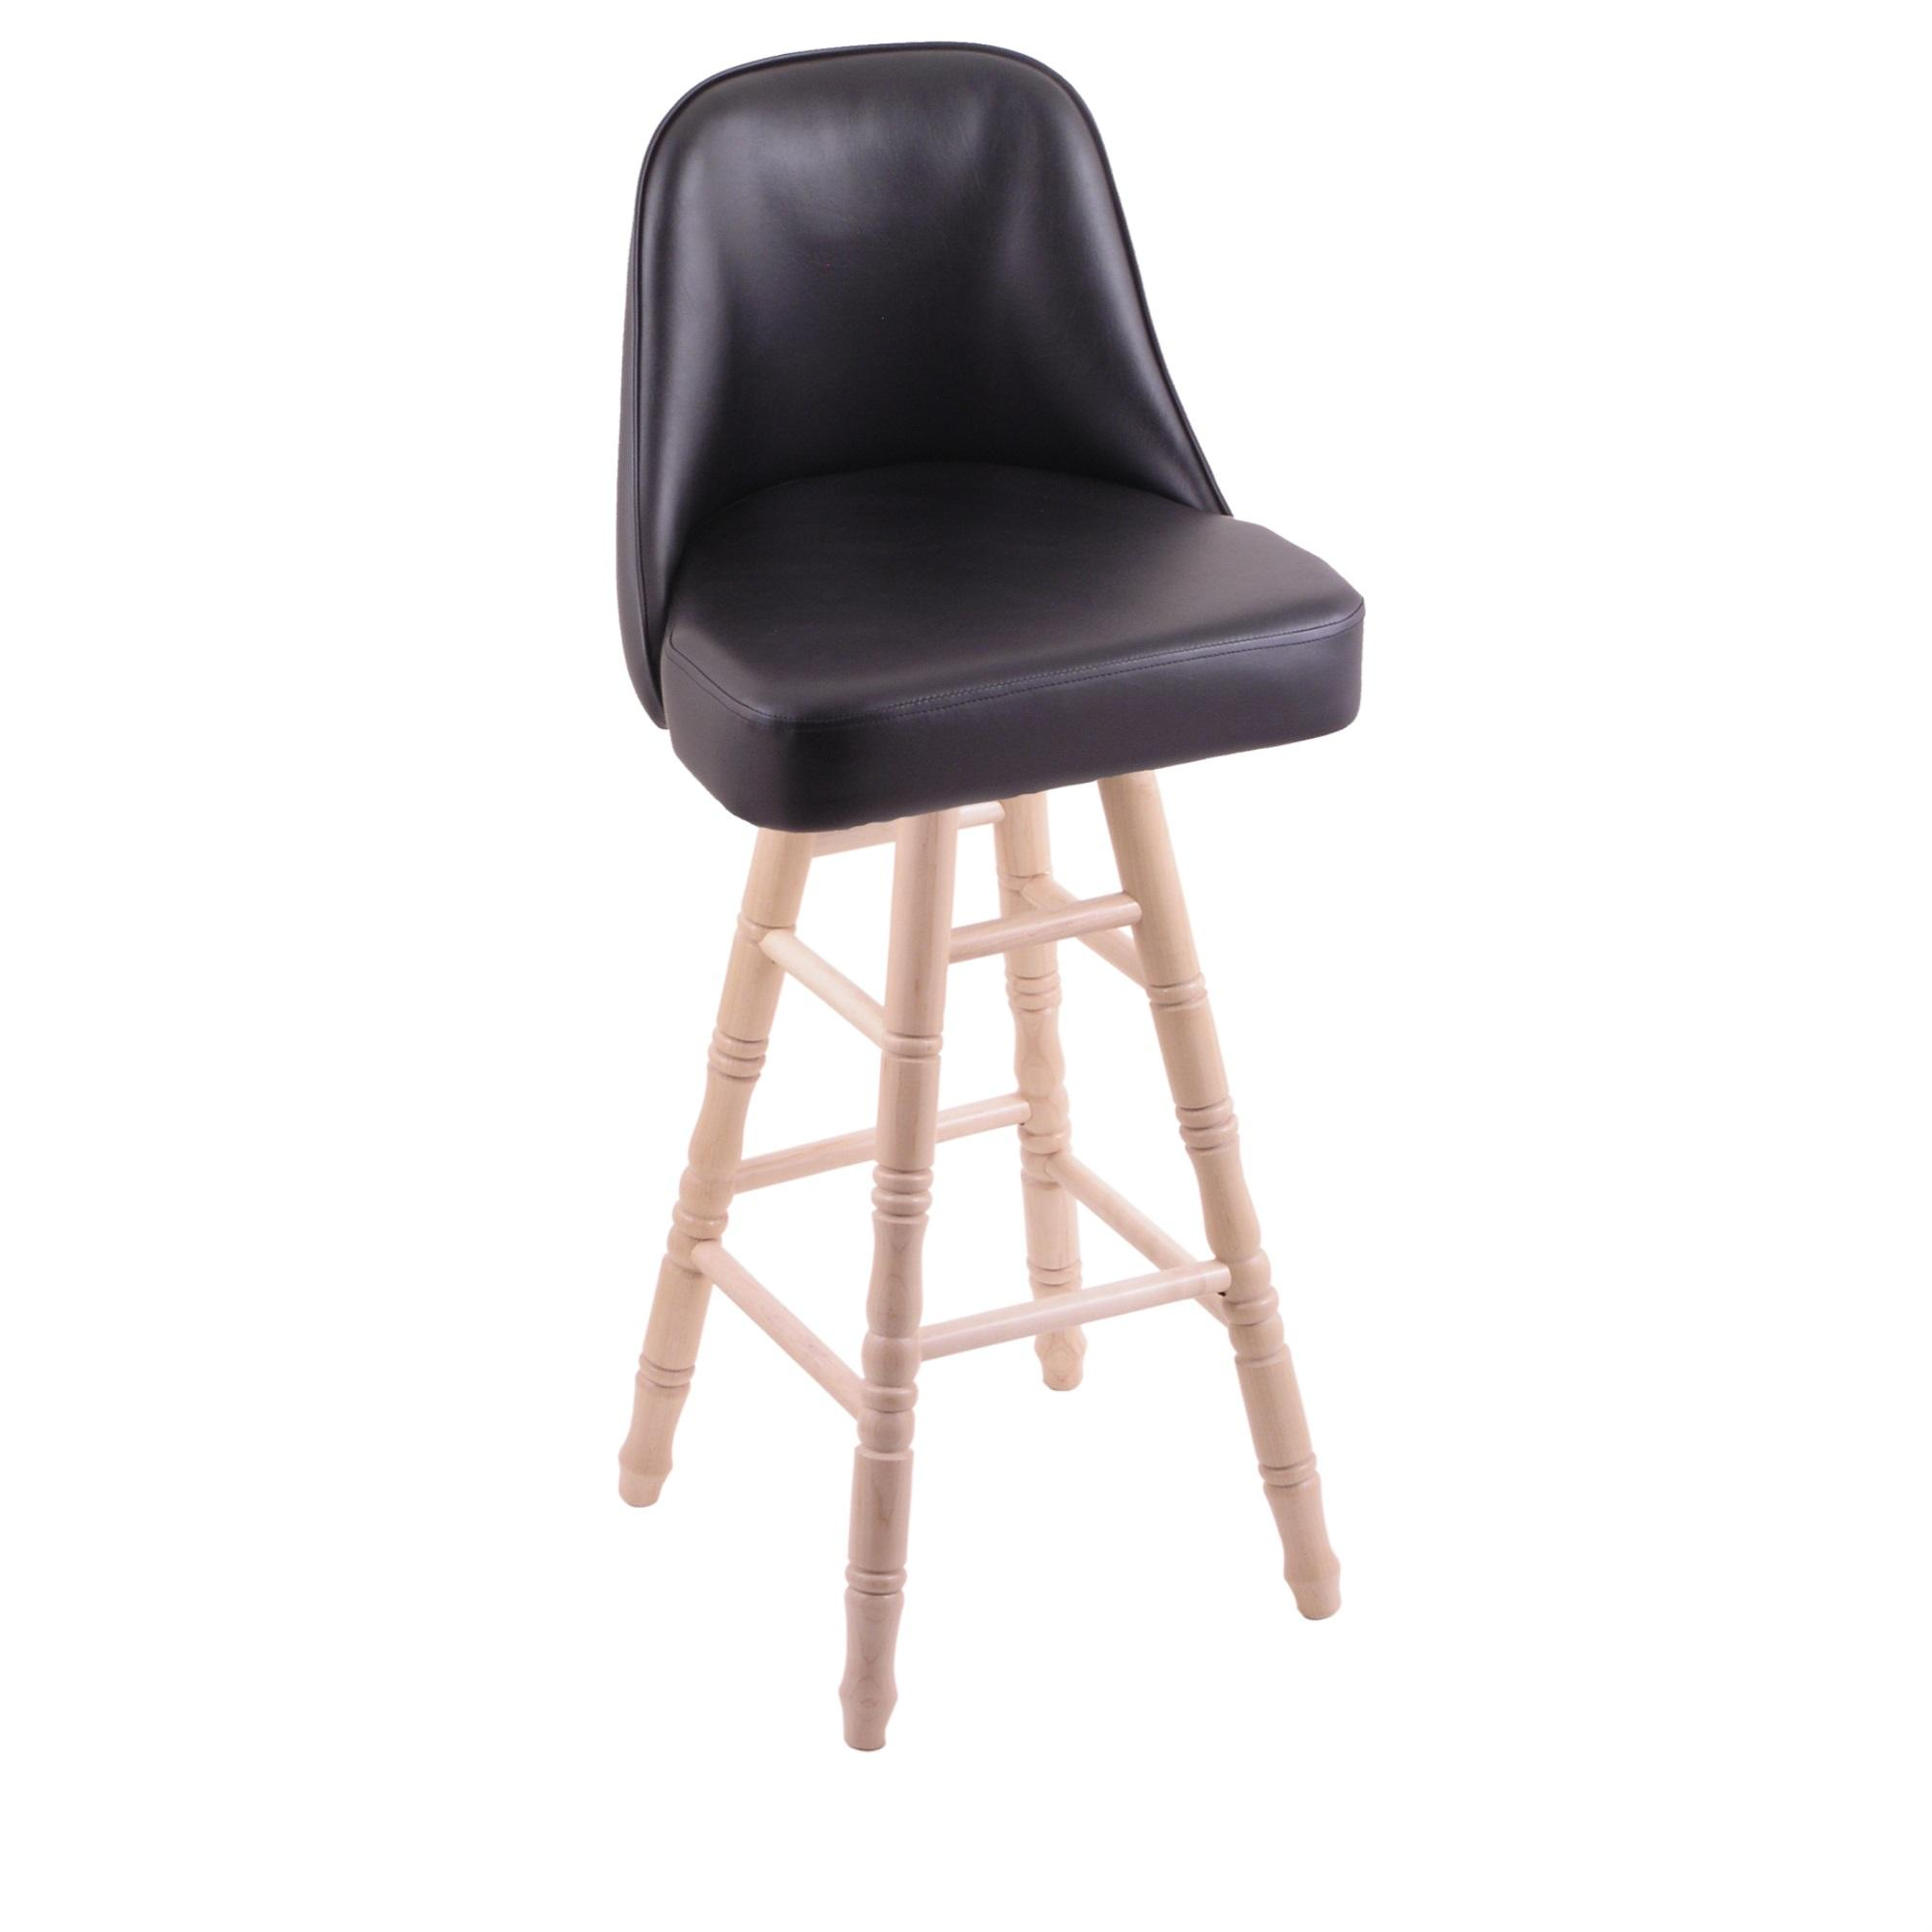 Grizzly Bar Stool with Turned Maple Legs, Natural Finish, and 360 Swivel